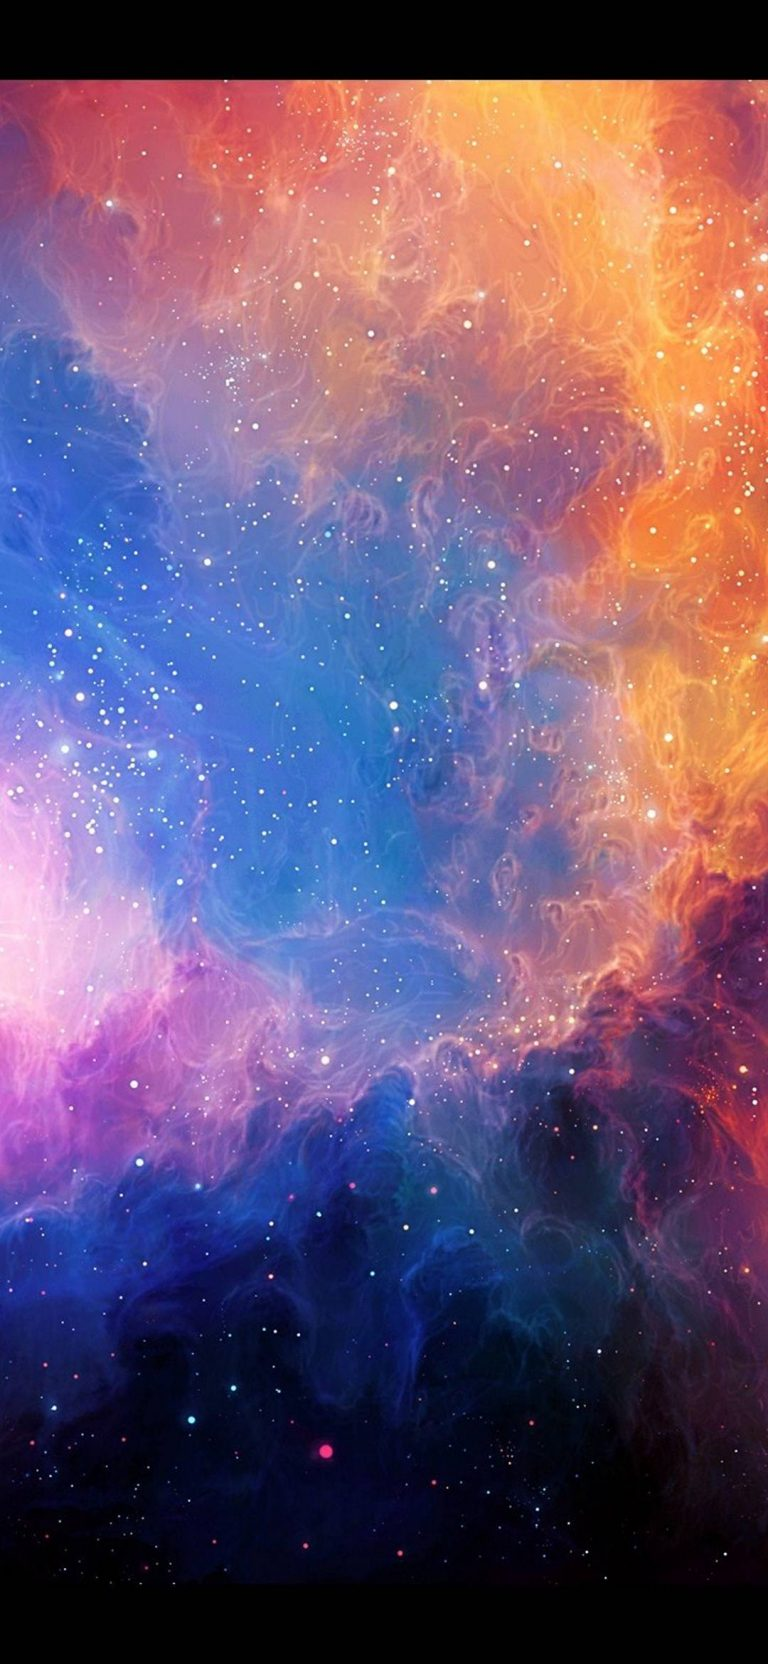 AbstractOuterSpaceStarsNebulae1080x2340